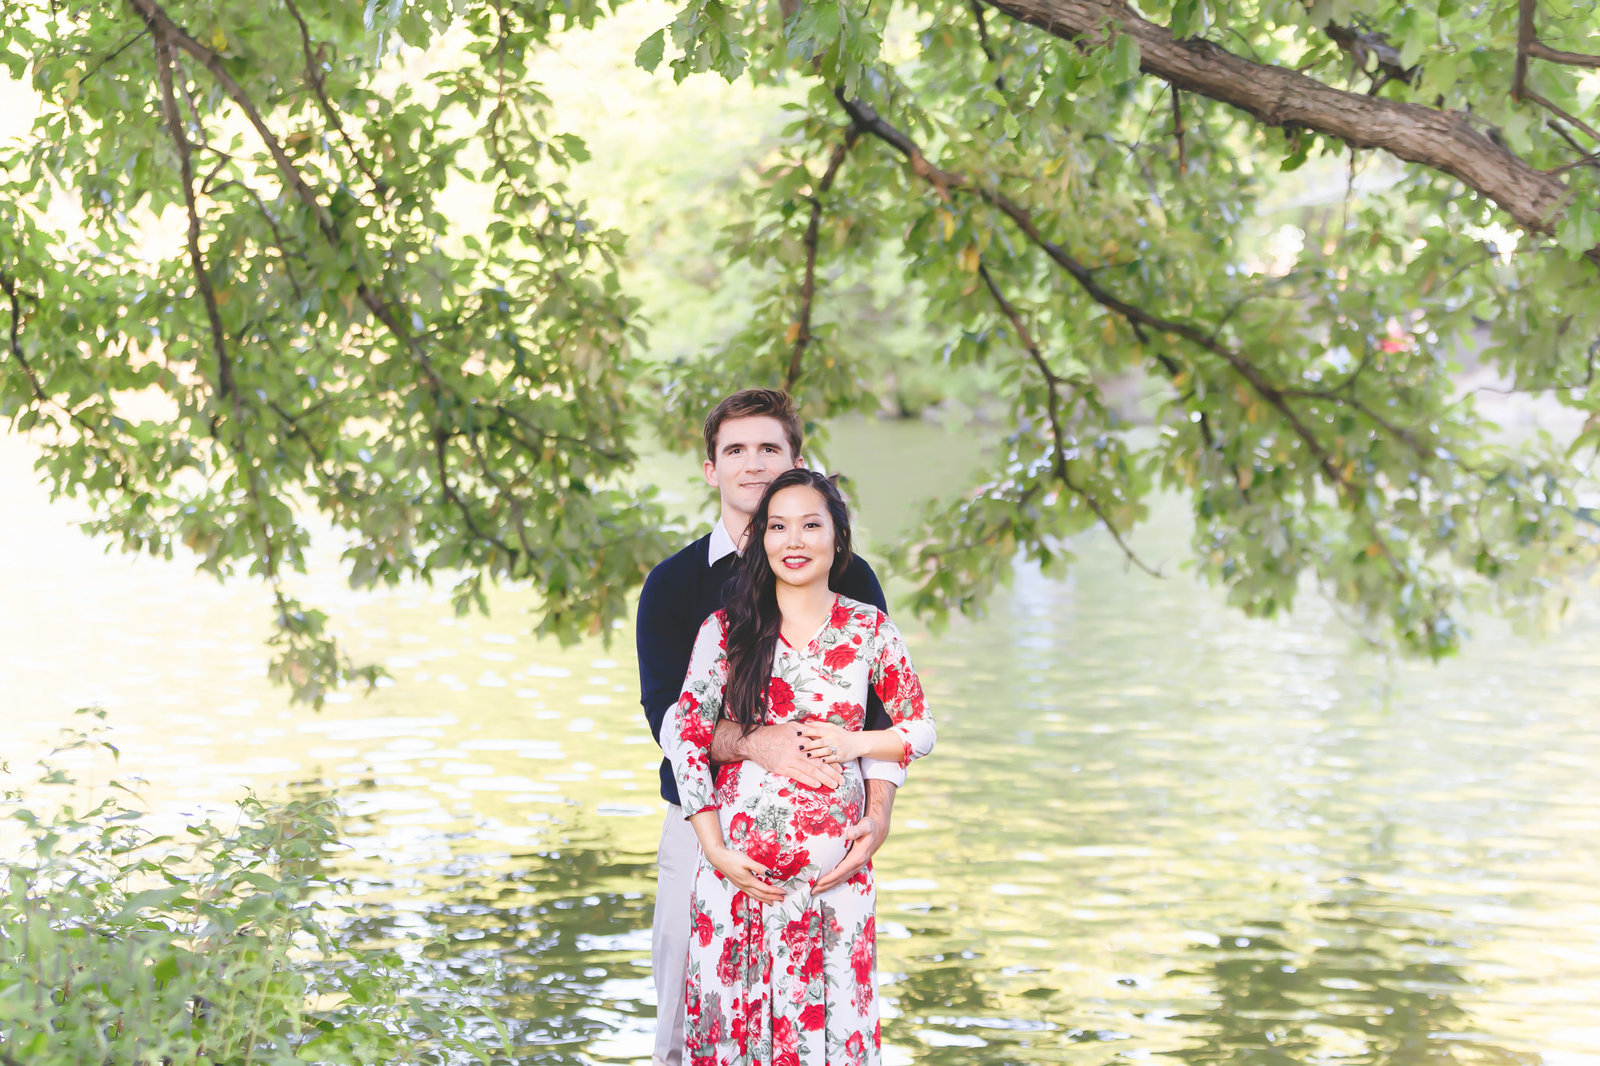 Dreamcatcherrosestudios-maternity-trees